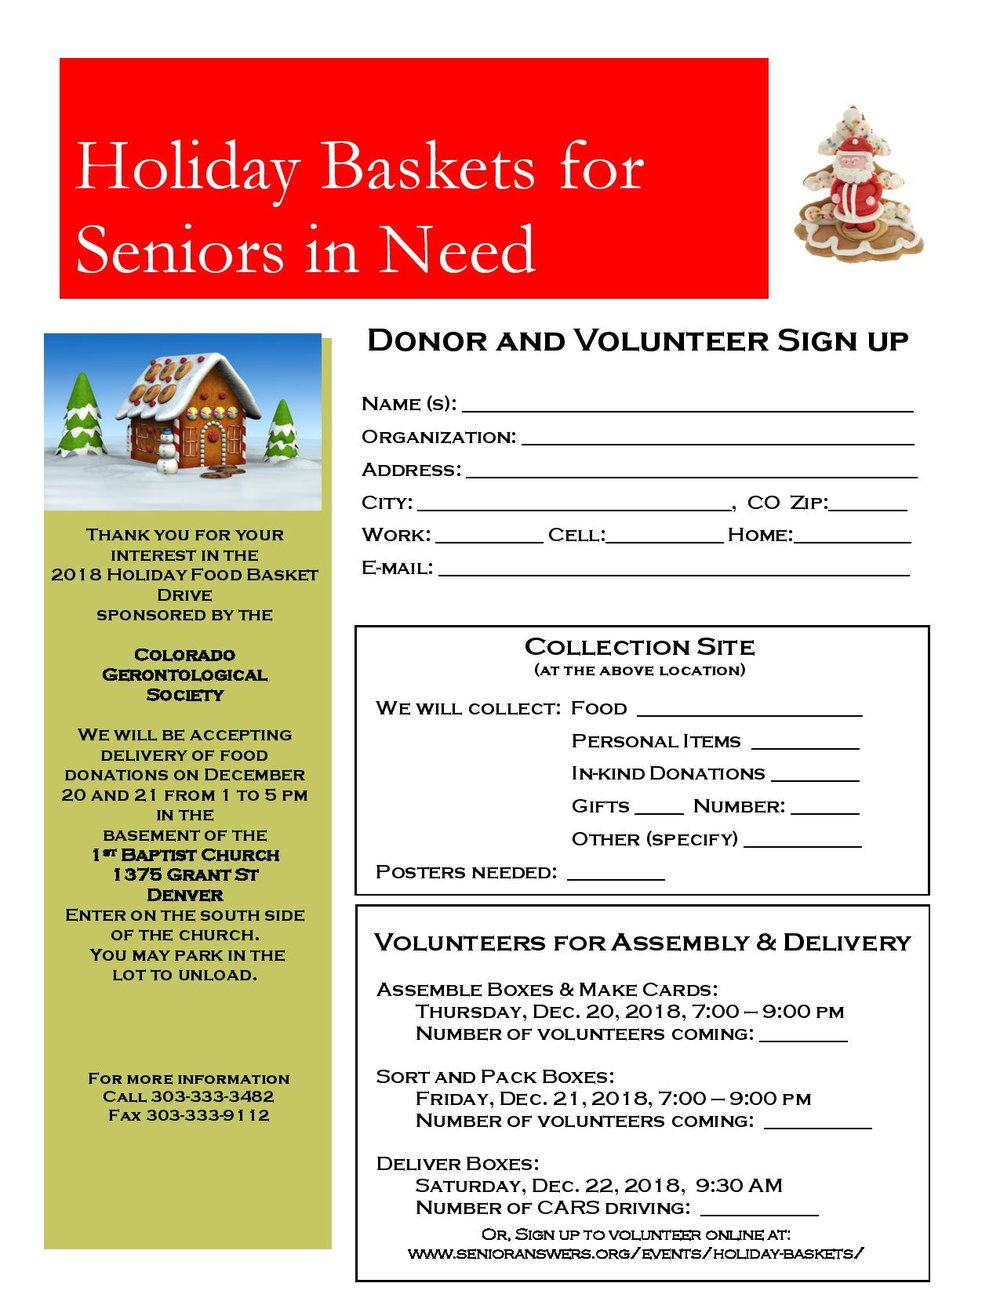 Donor and Volunteer Sign up Form 2018 (1)-page-001.jpg